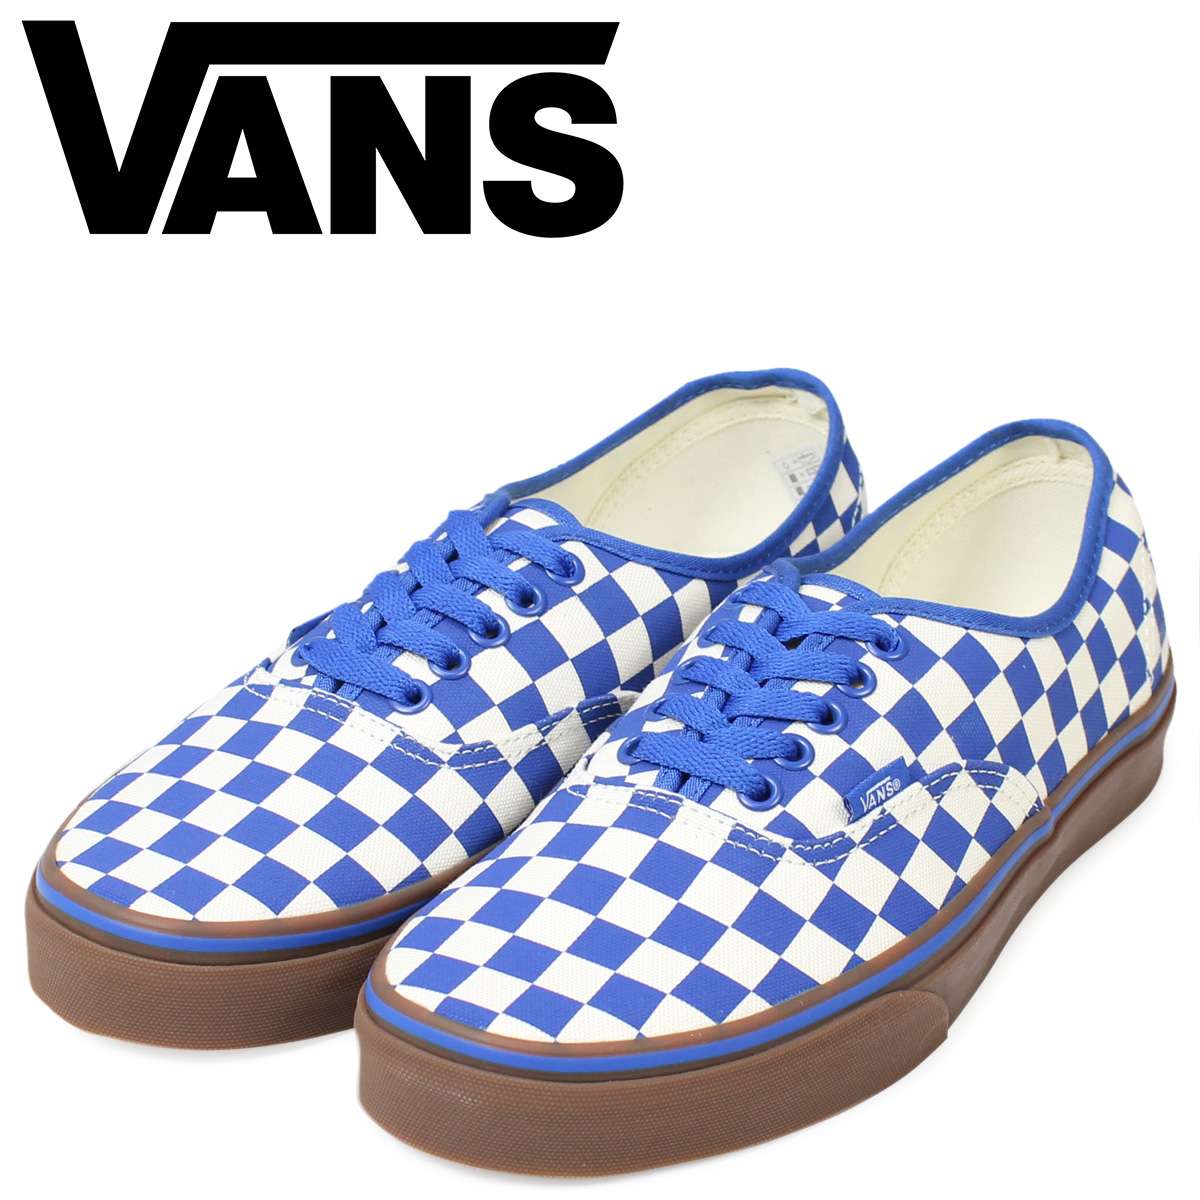 17907d0c1a1 ... VANS authentic vans slip-ons men sneakers station wagons AUTHENTIC  VN0004MKIC5 shoes blue 1229 Shinnyu ...